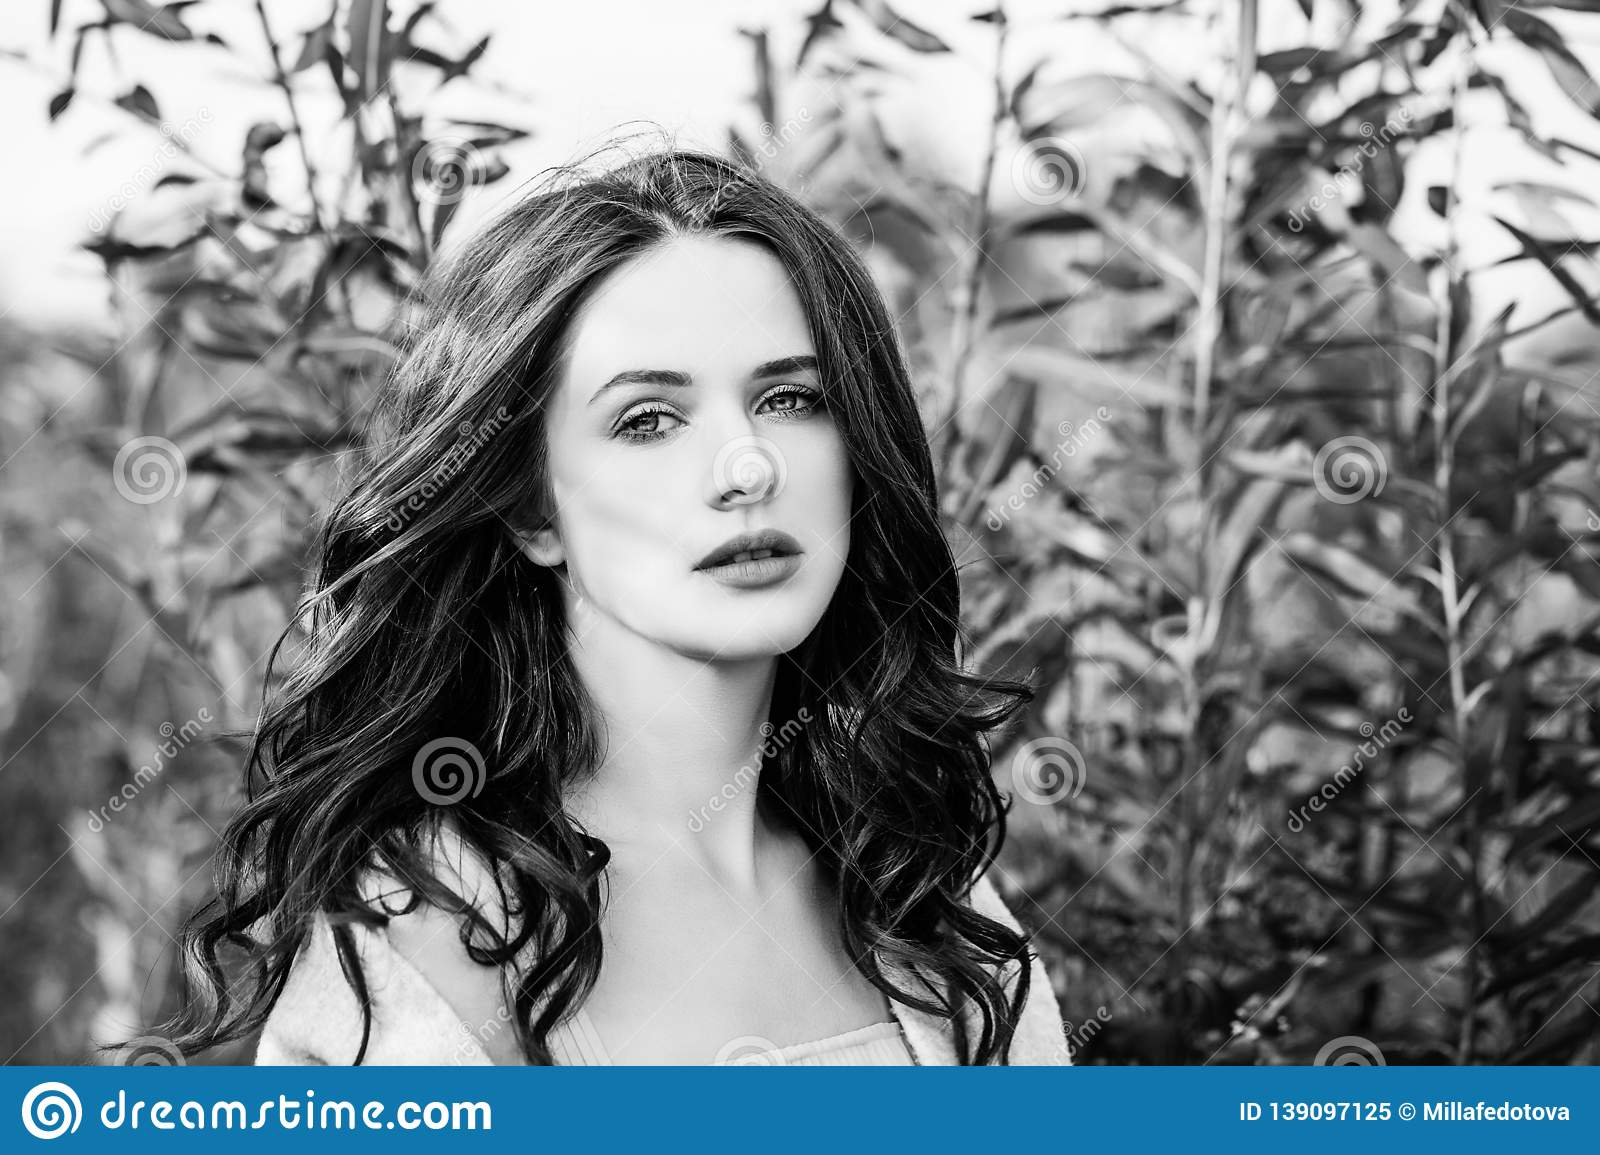 da6b97df8da Black And White Outdoors Portrait Of Perfect Young Woman Stock Image ...